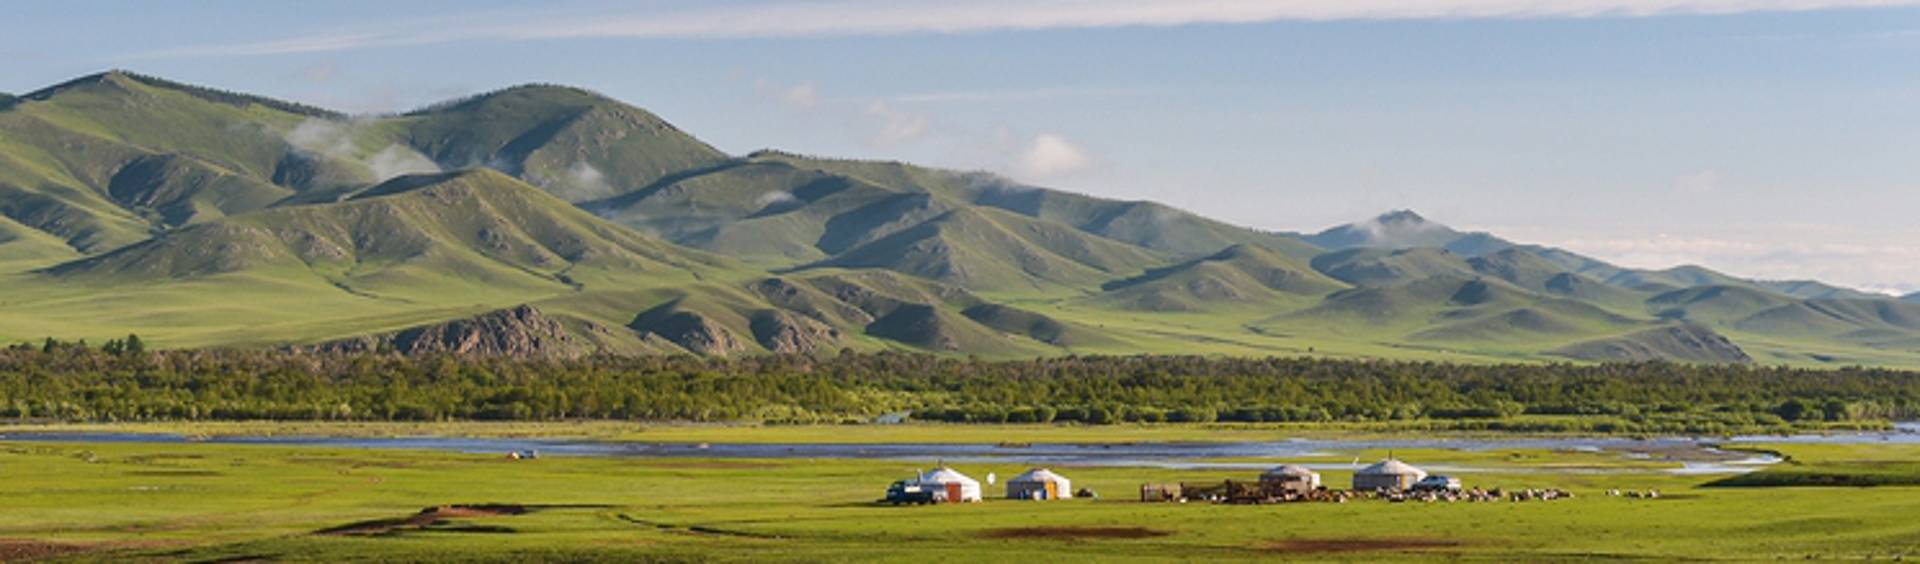 Mongolia's big sky and vast fenceless landscapes